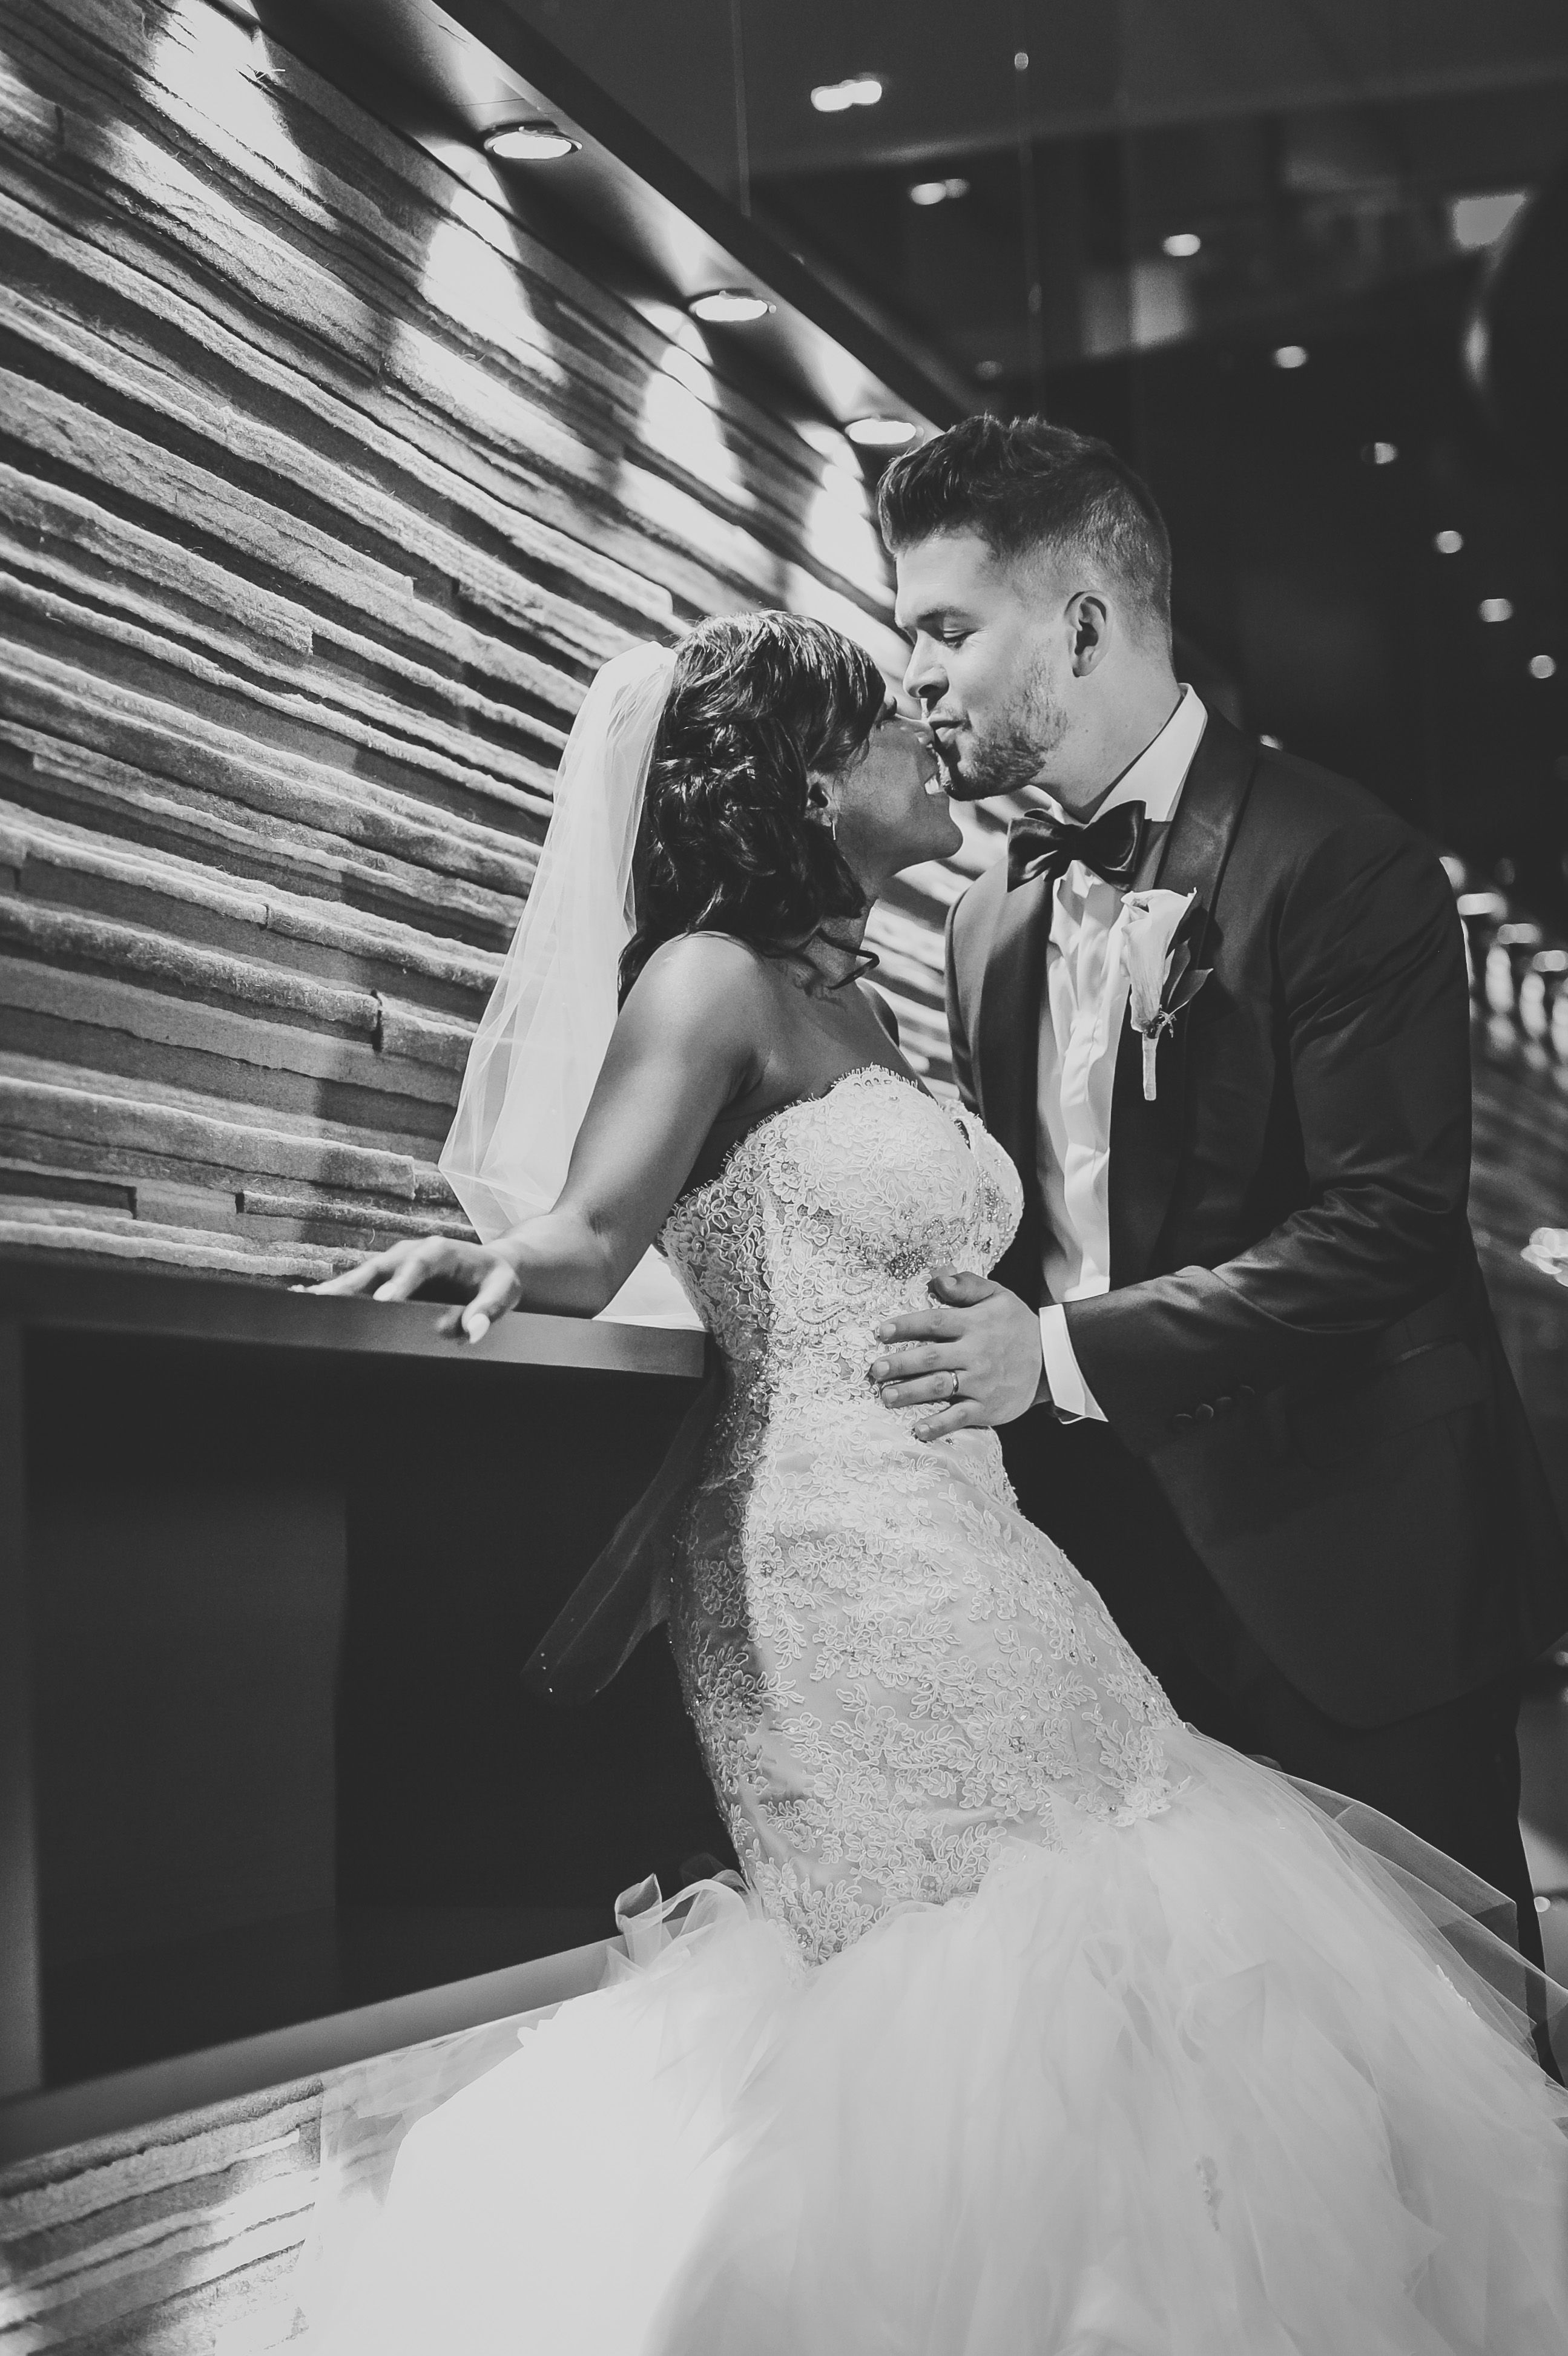 Bwwm love weddingphotography wedding remembering the best day of